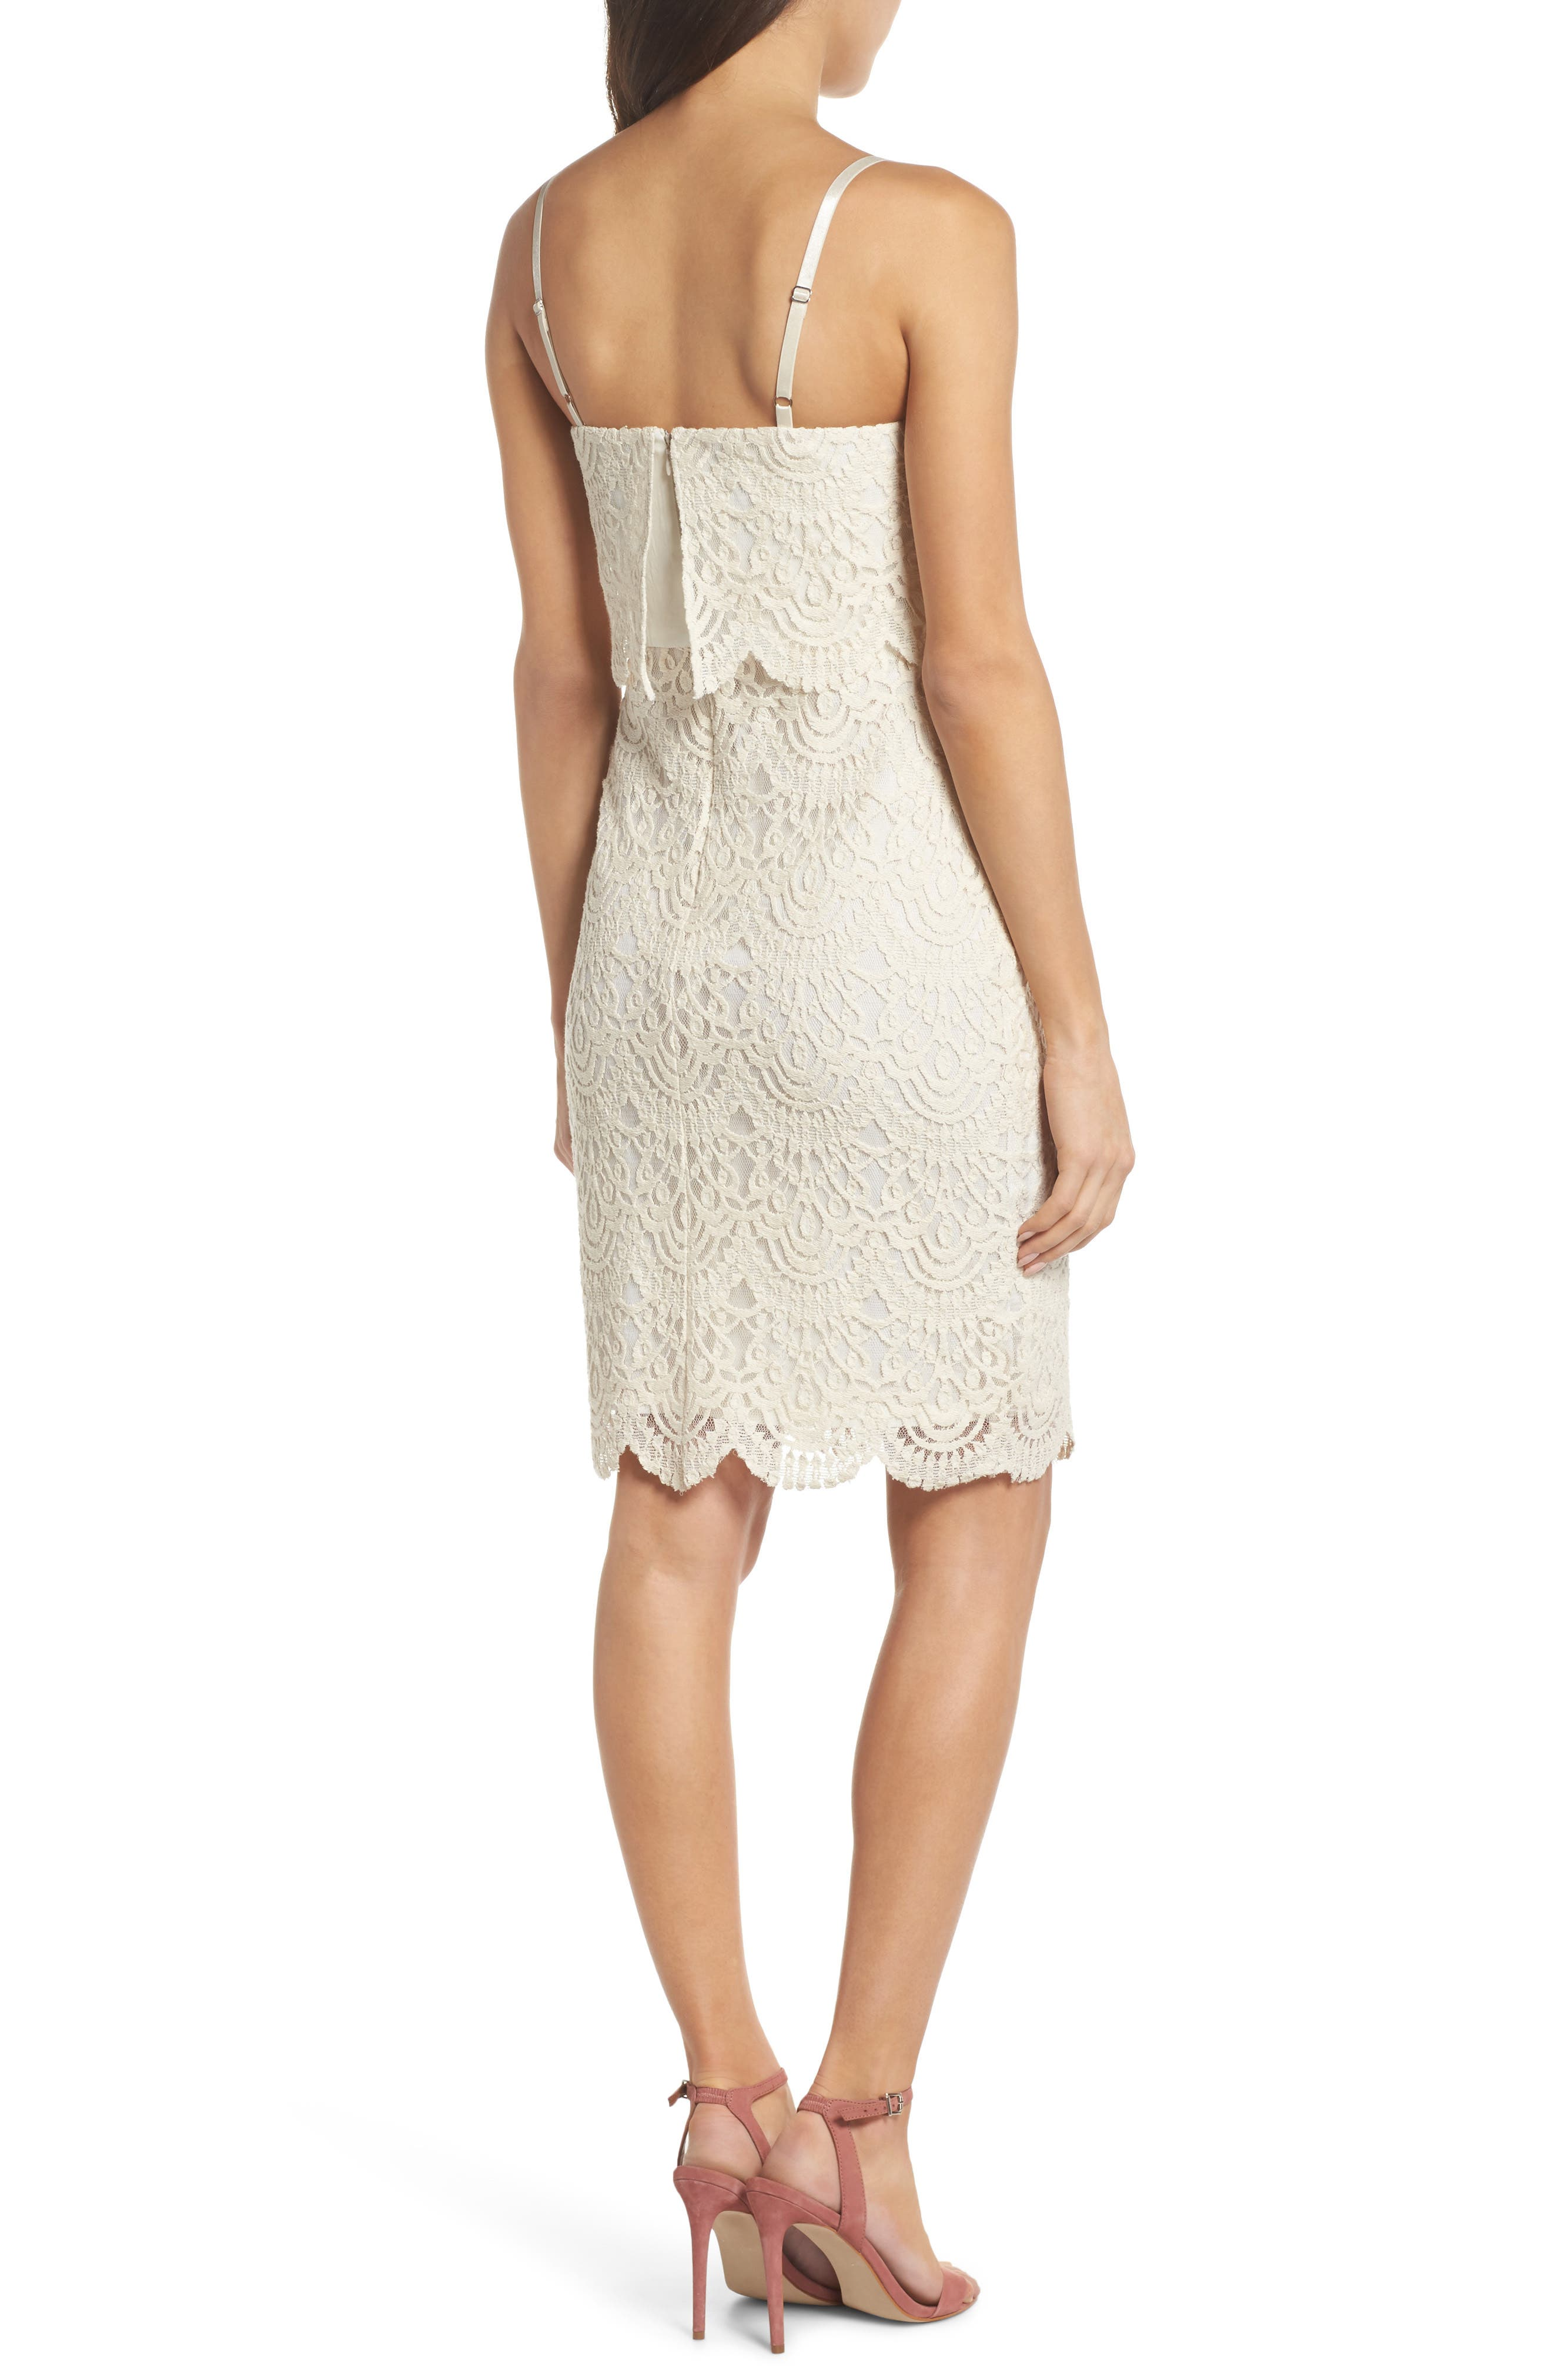 Barnsdall Afternoon Tiered Lace Dress,                             Alternate thumbnail 2, color,                             900